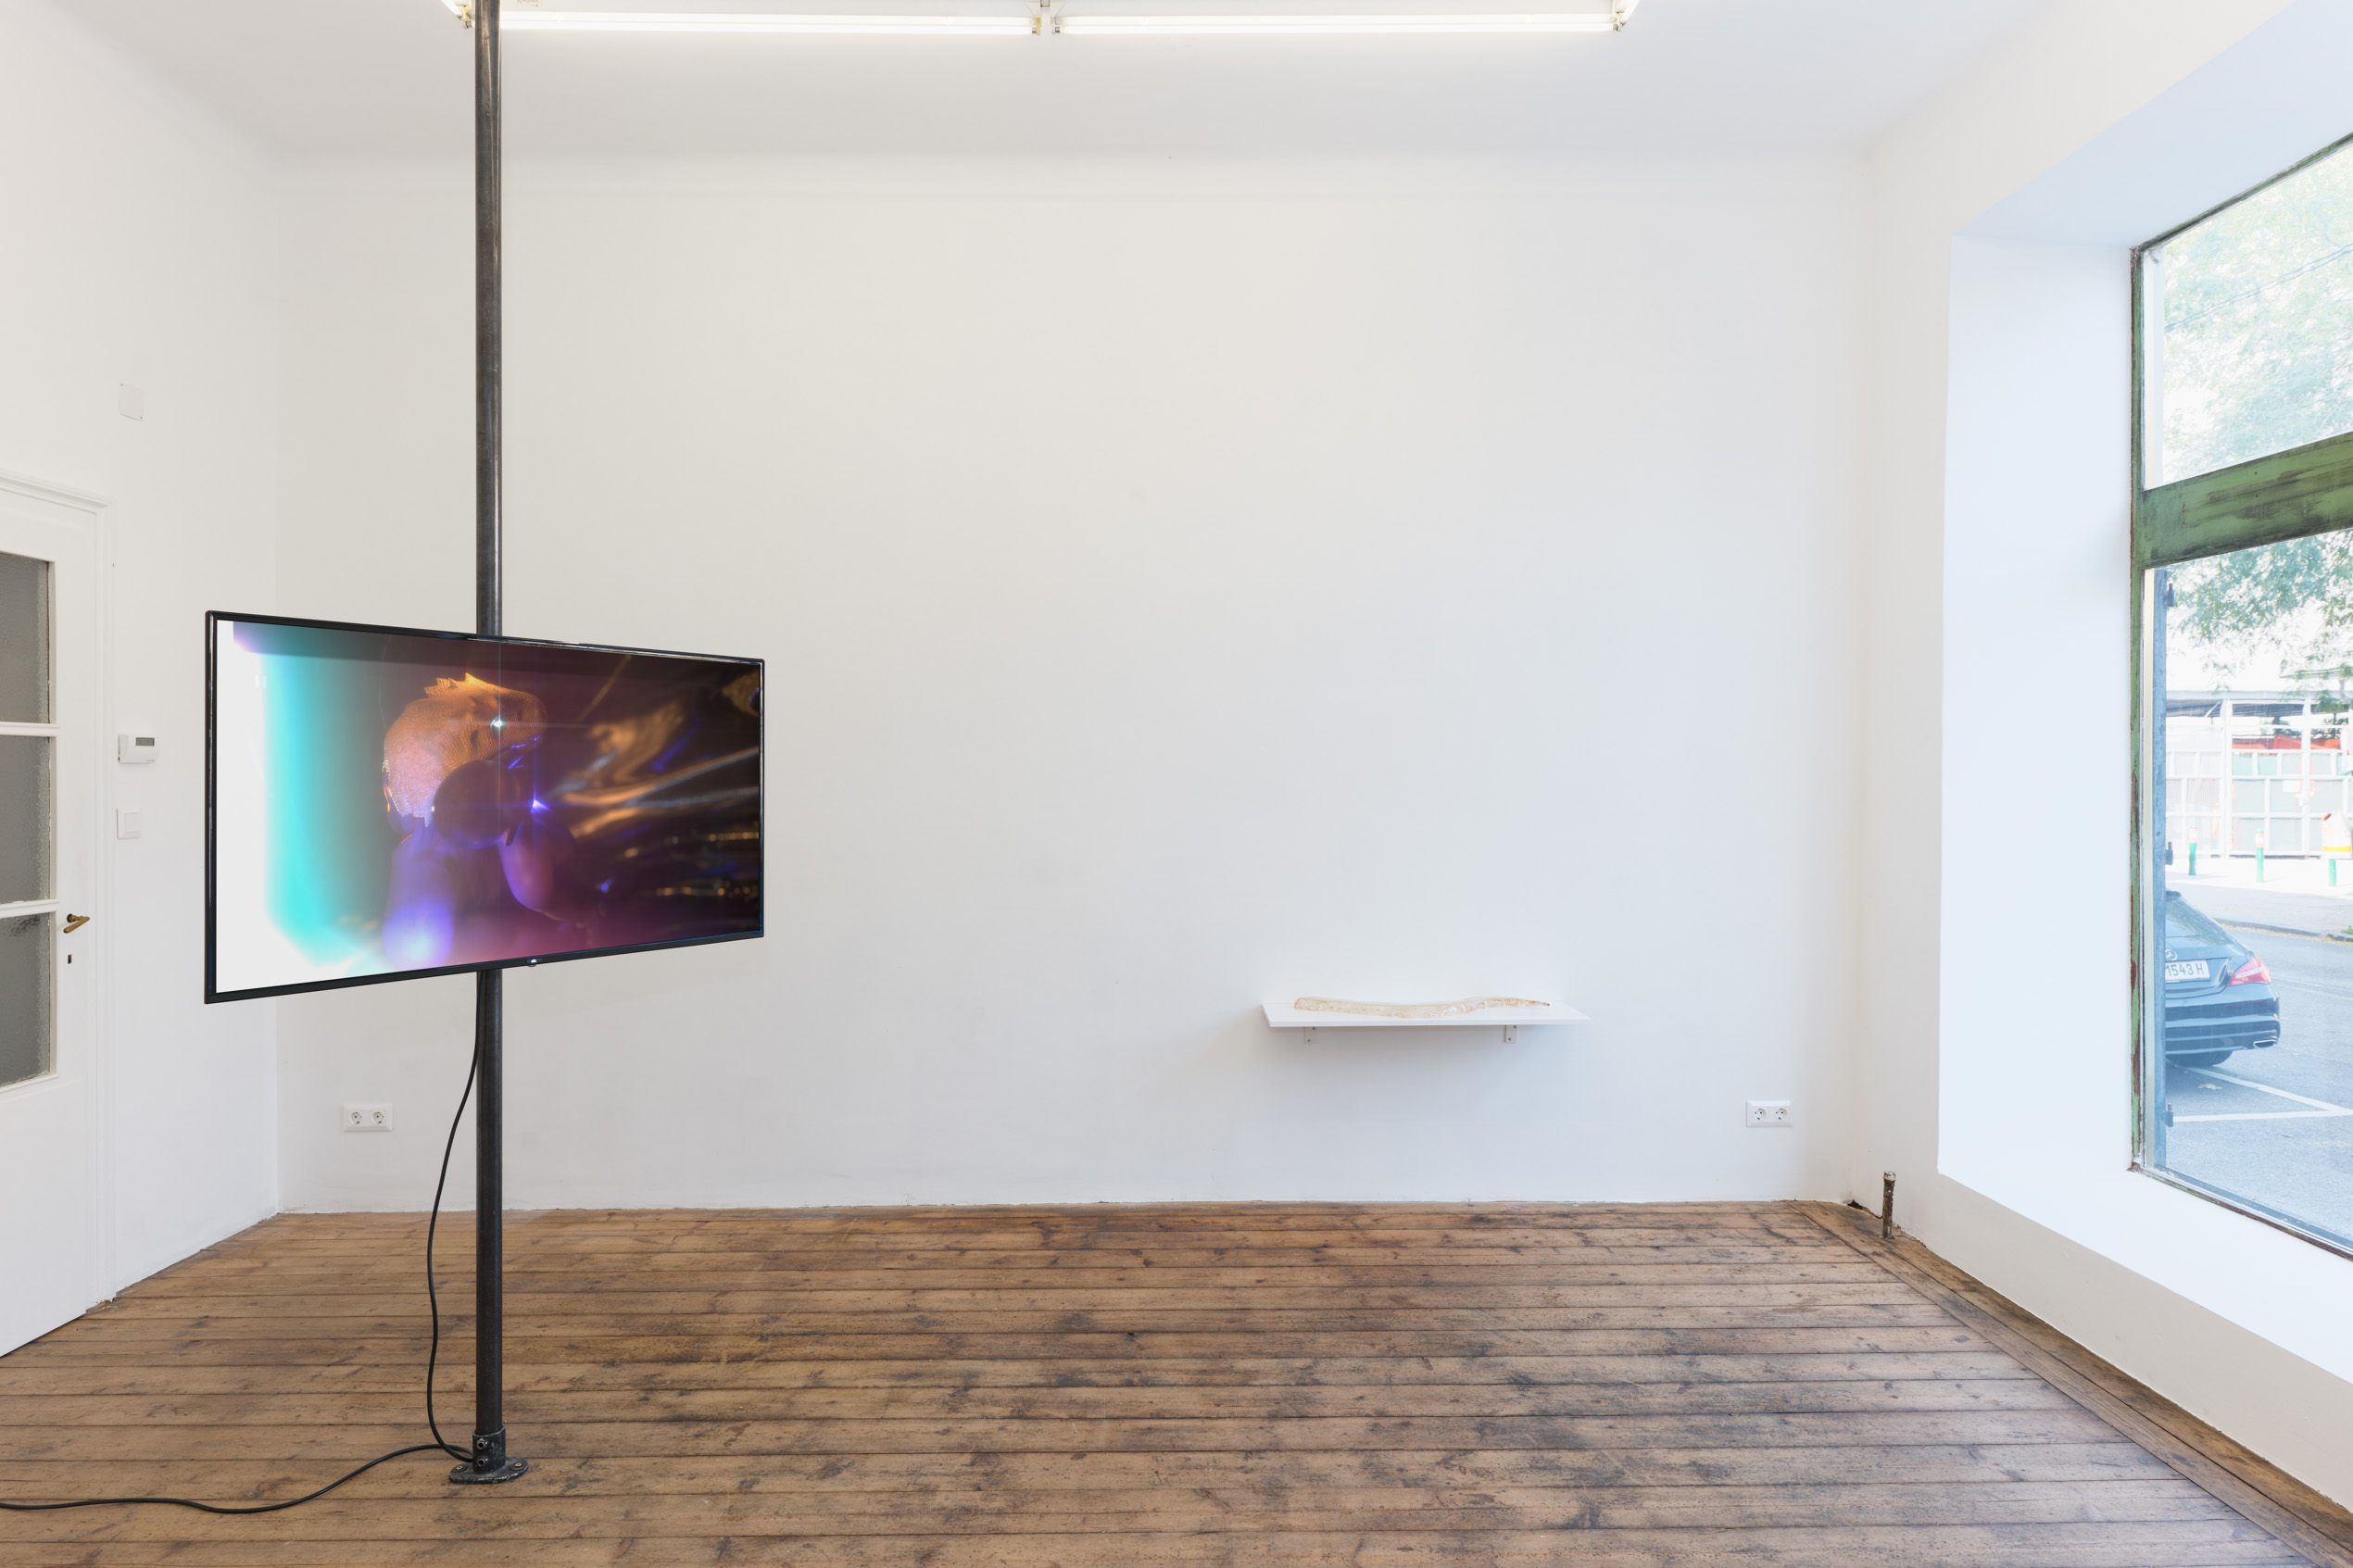 Tarek Lakhrissi, I wear my wounds on my tongue, 2021. Installation view Kevin Space, Vienna, AT. Photographer: Maximilian Anelli-Monti.